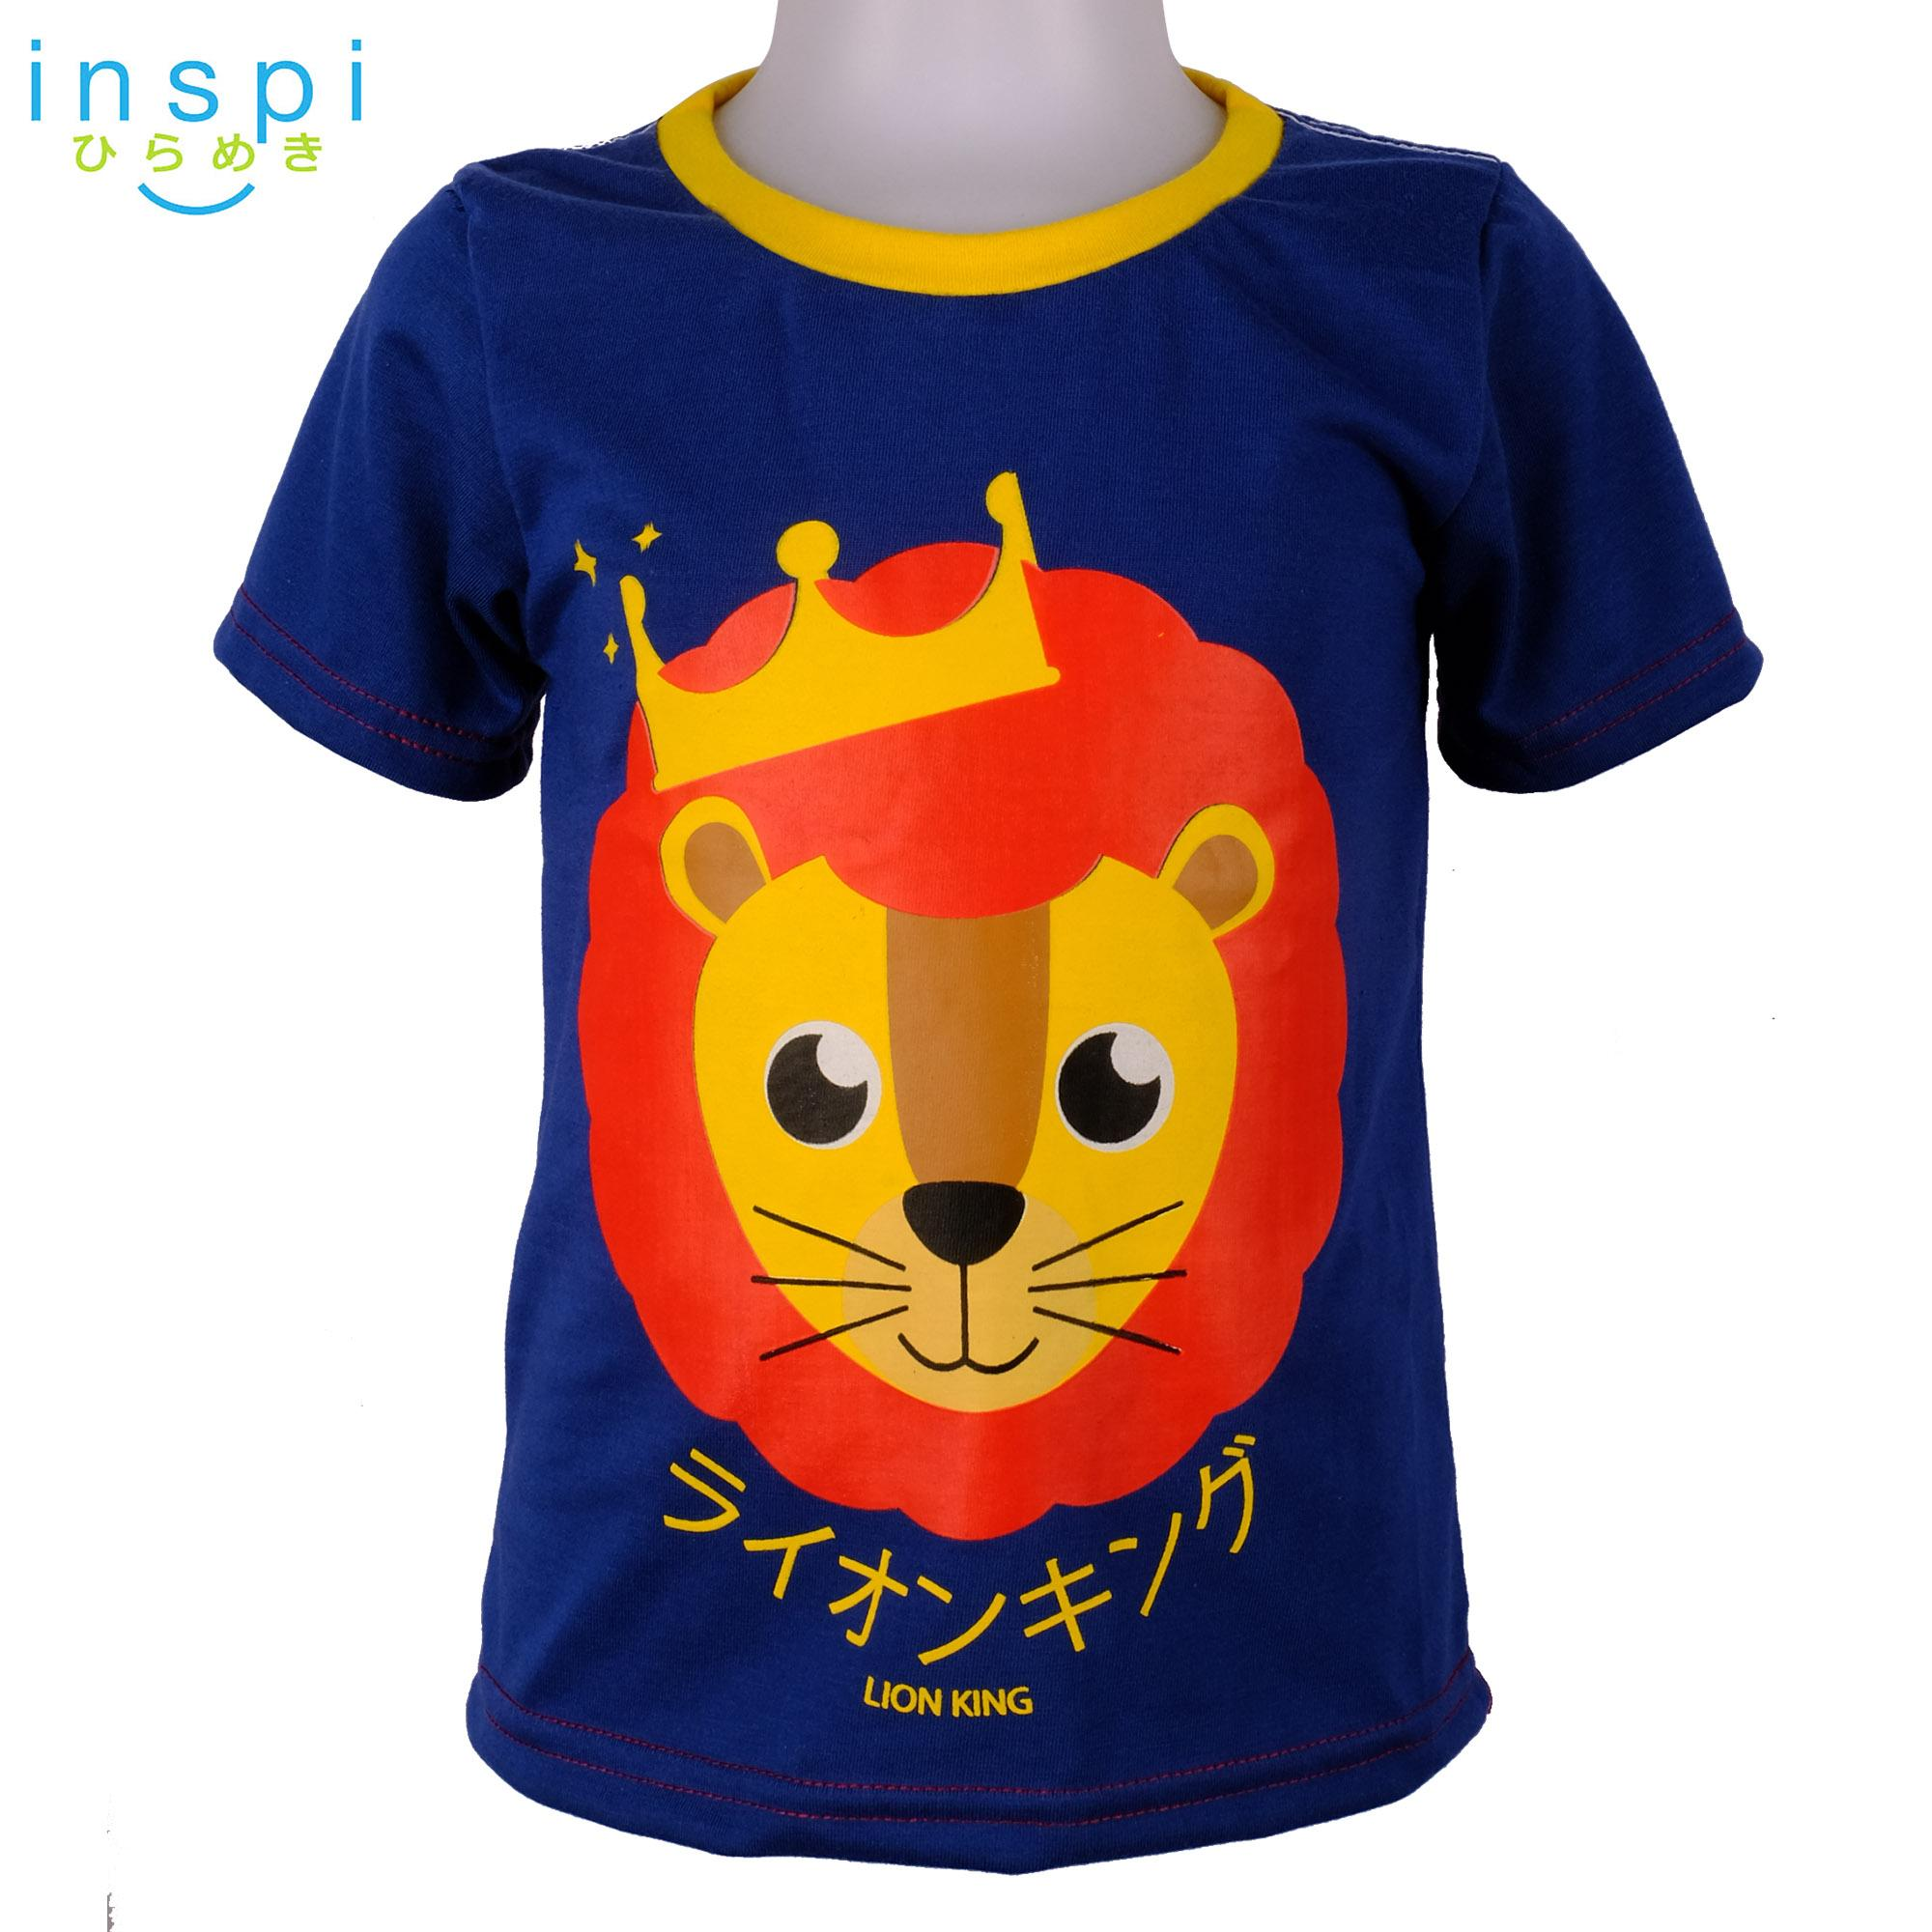 INSPI Kids Boys Lion Blue tshirt top tee t shirt for boys shirts clothing